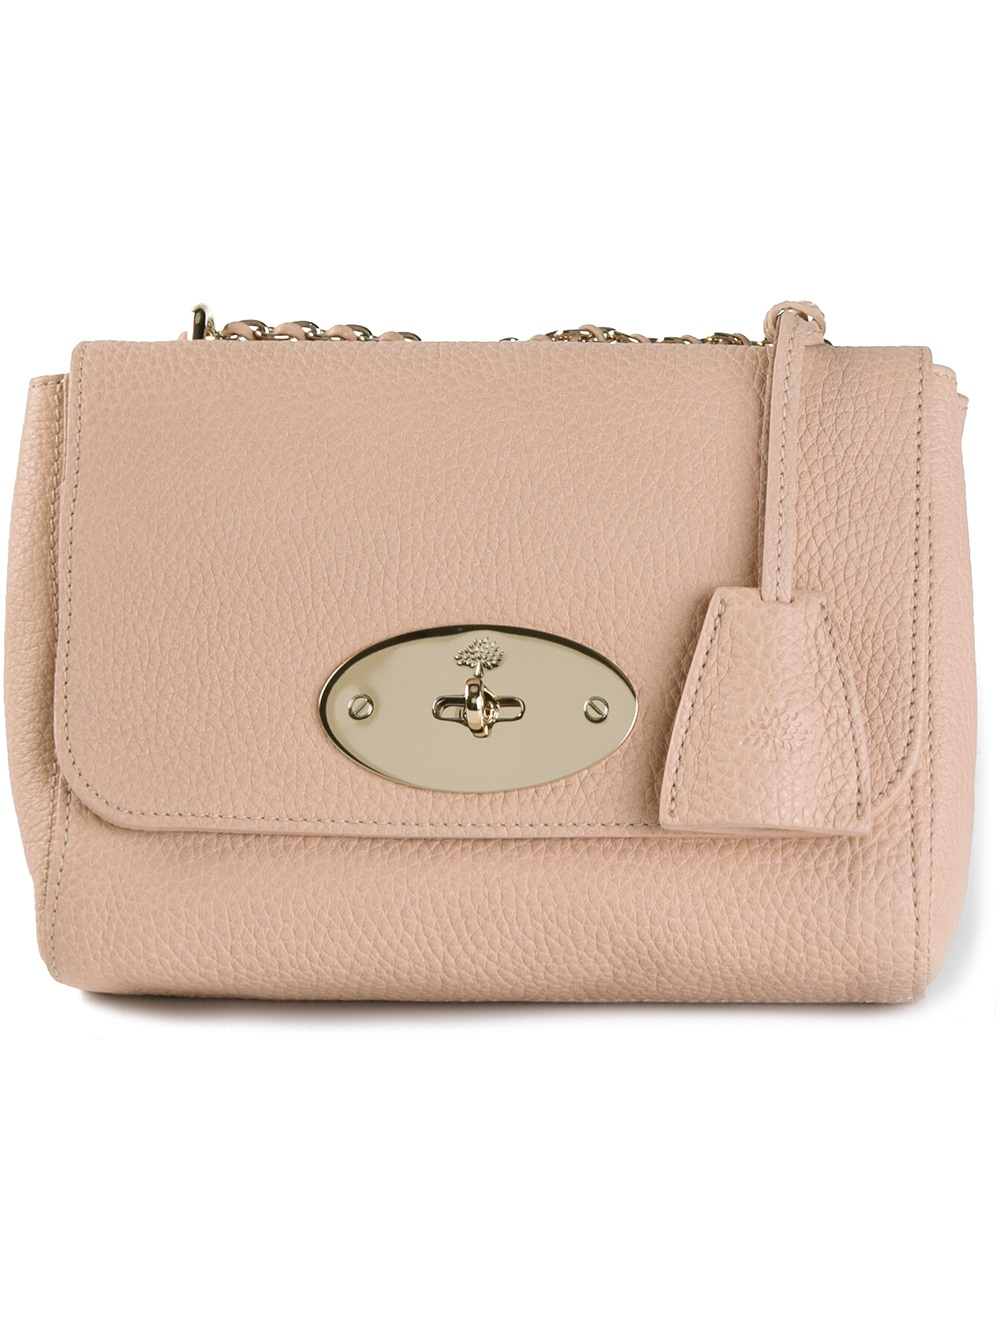 b39289d4a3 Lyst - Mulberry Lily Shoulder Bag in Pink